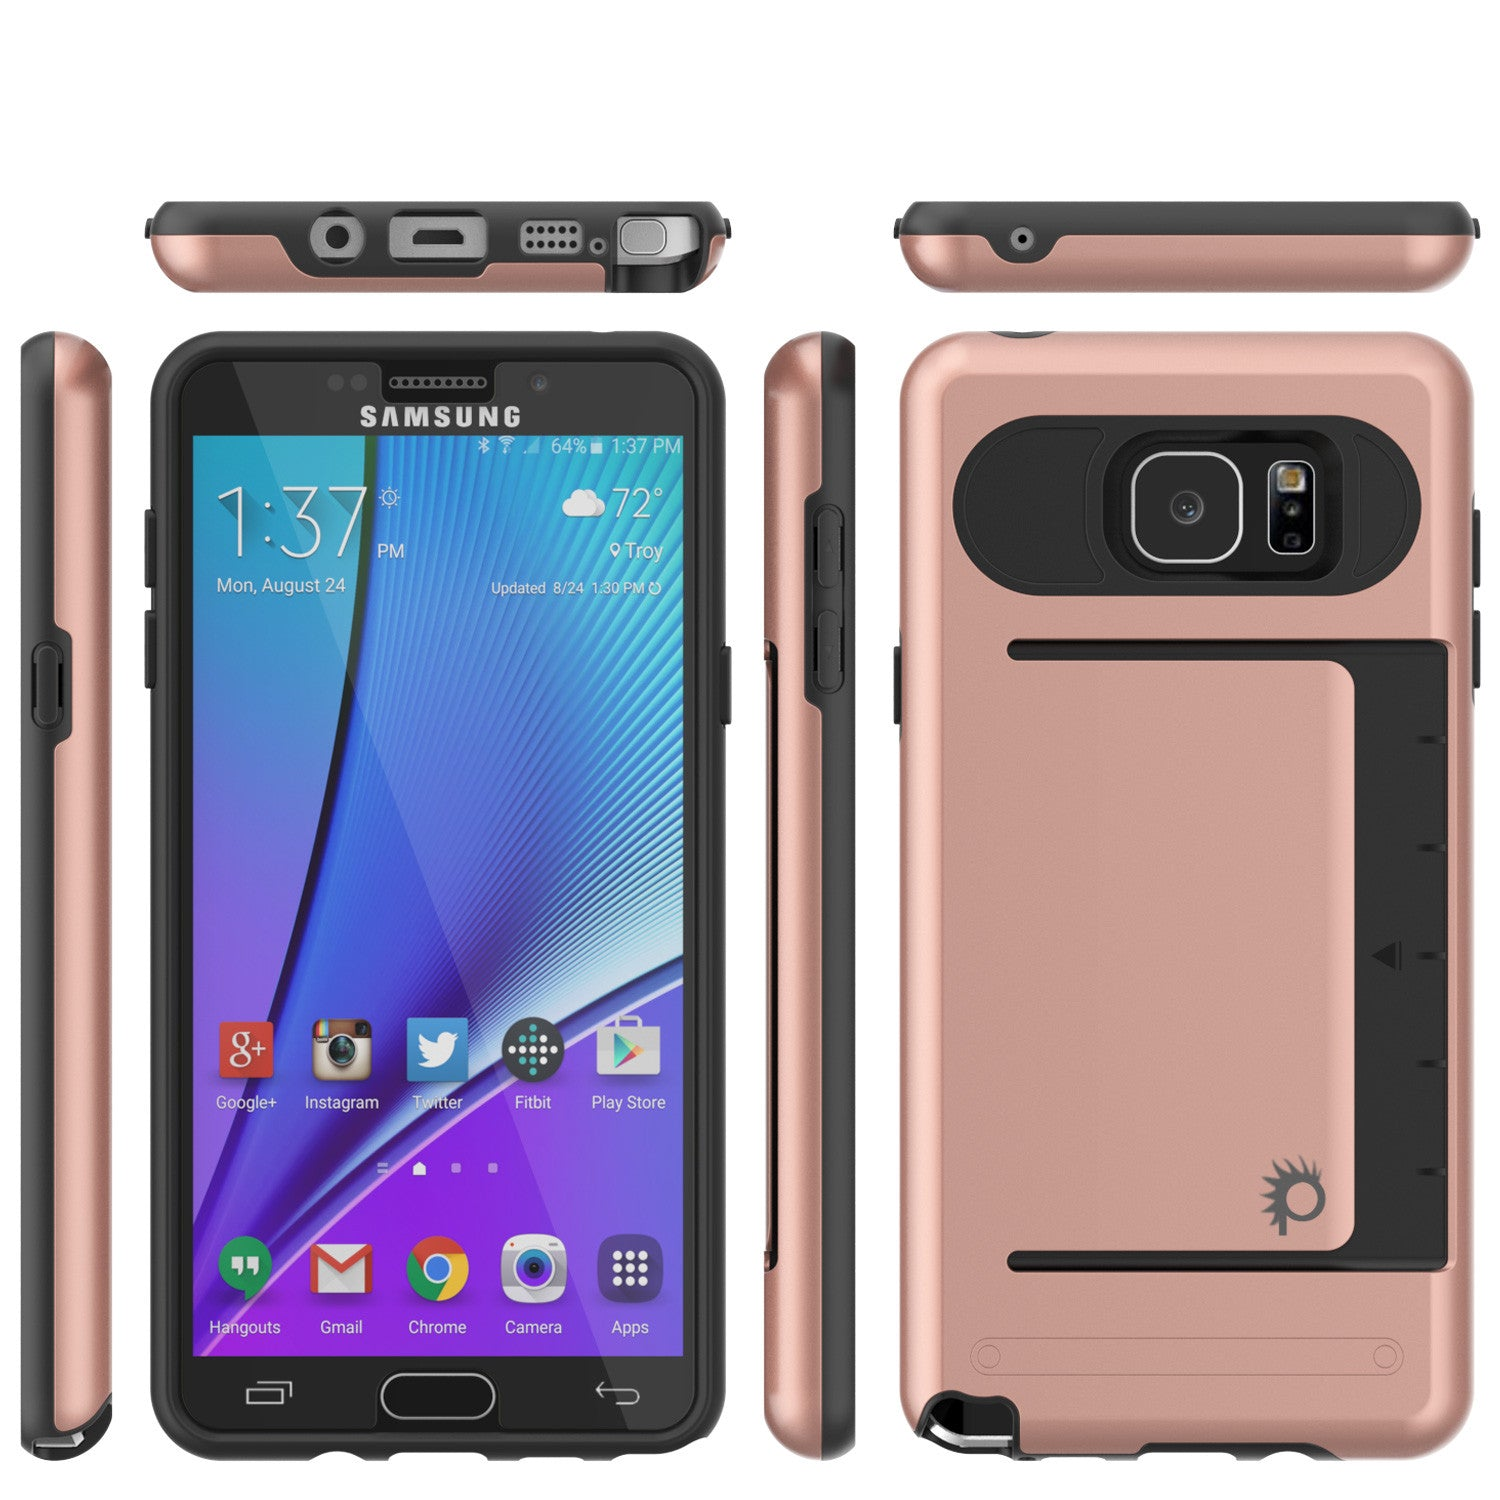 Galaxy Note 5 Case PunkCase CLUTCH Rose Gold Series Slim Armor Soft Cover Case w/ Tempered Glass